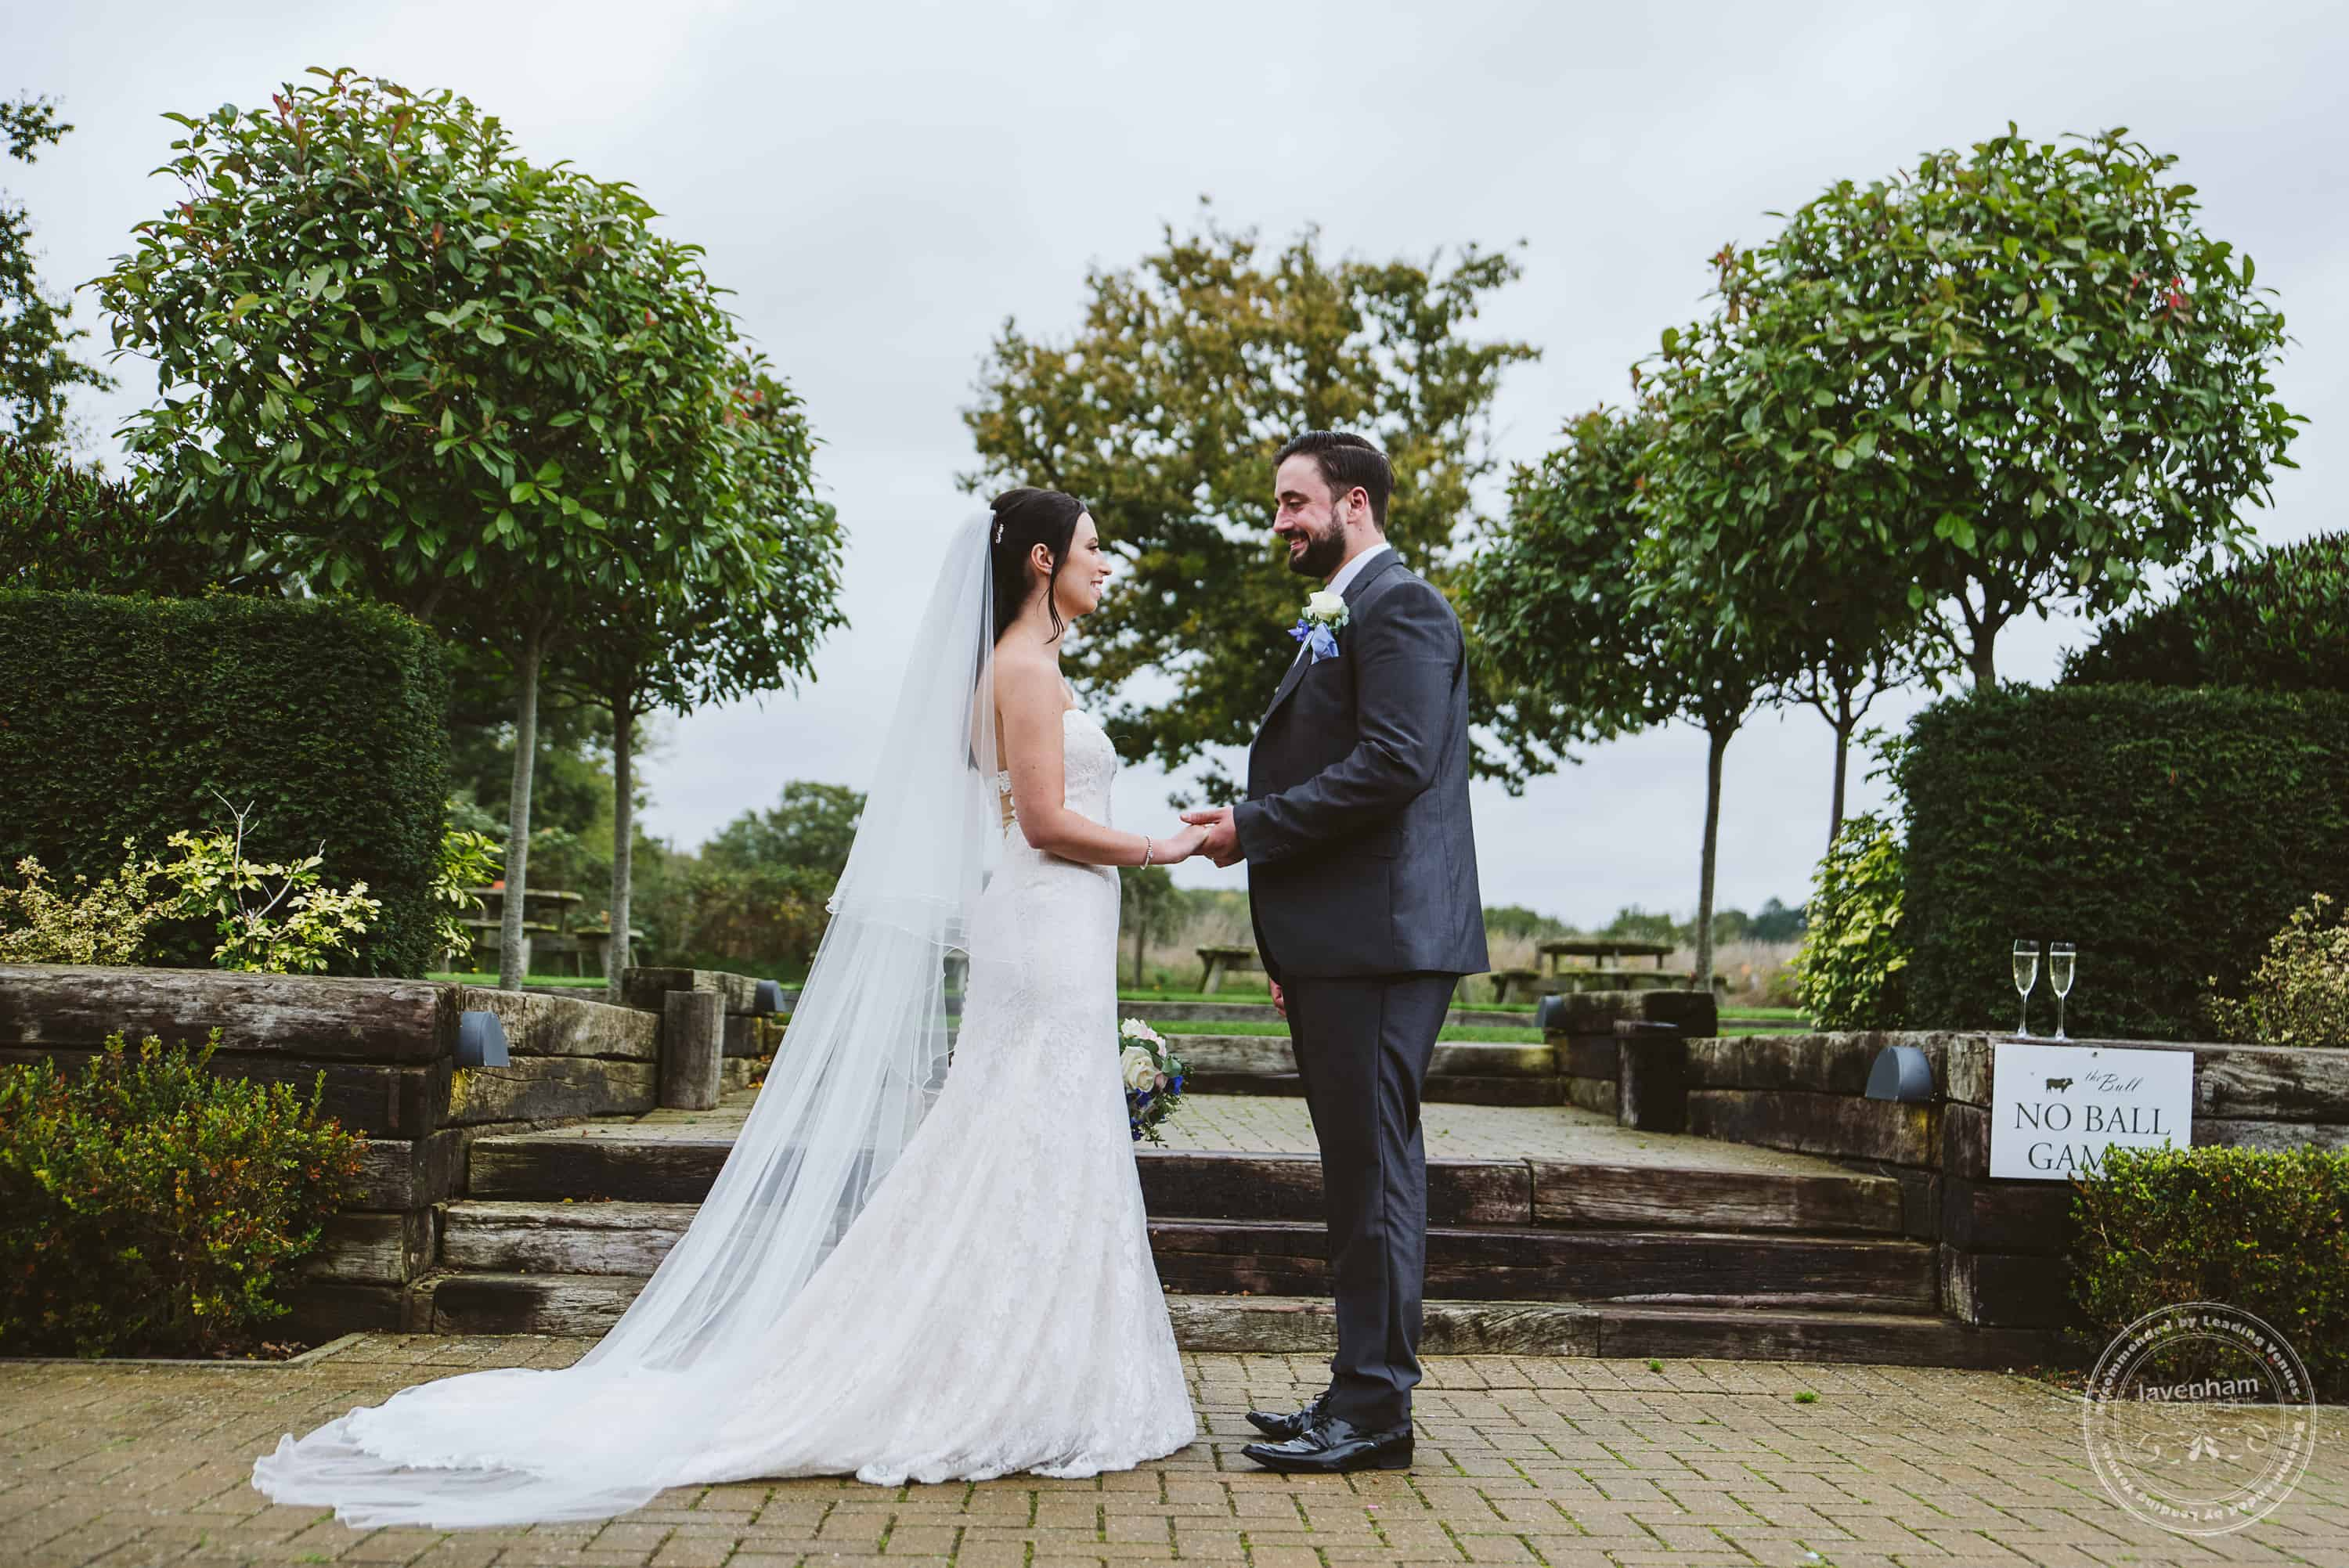 261019 Bull and Willow Room Essex Wedding Photographer 054